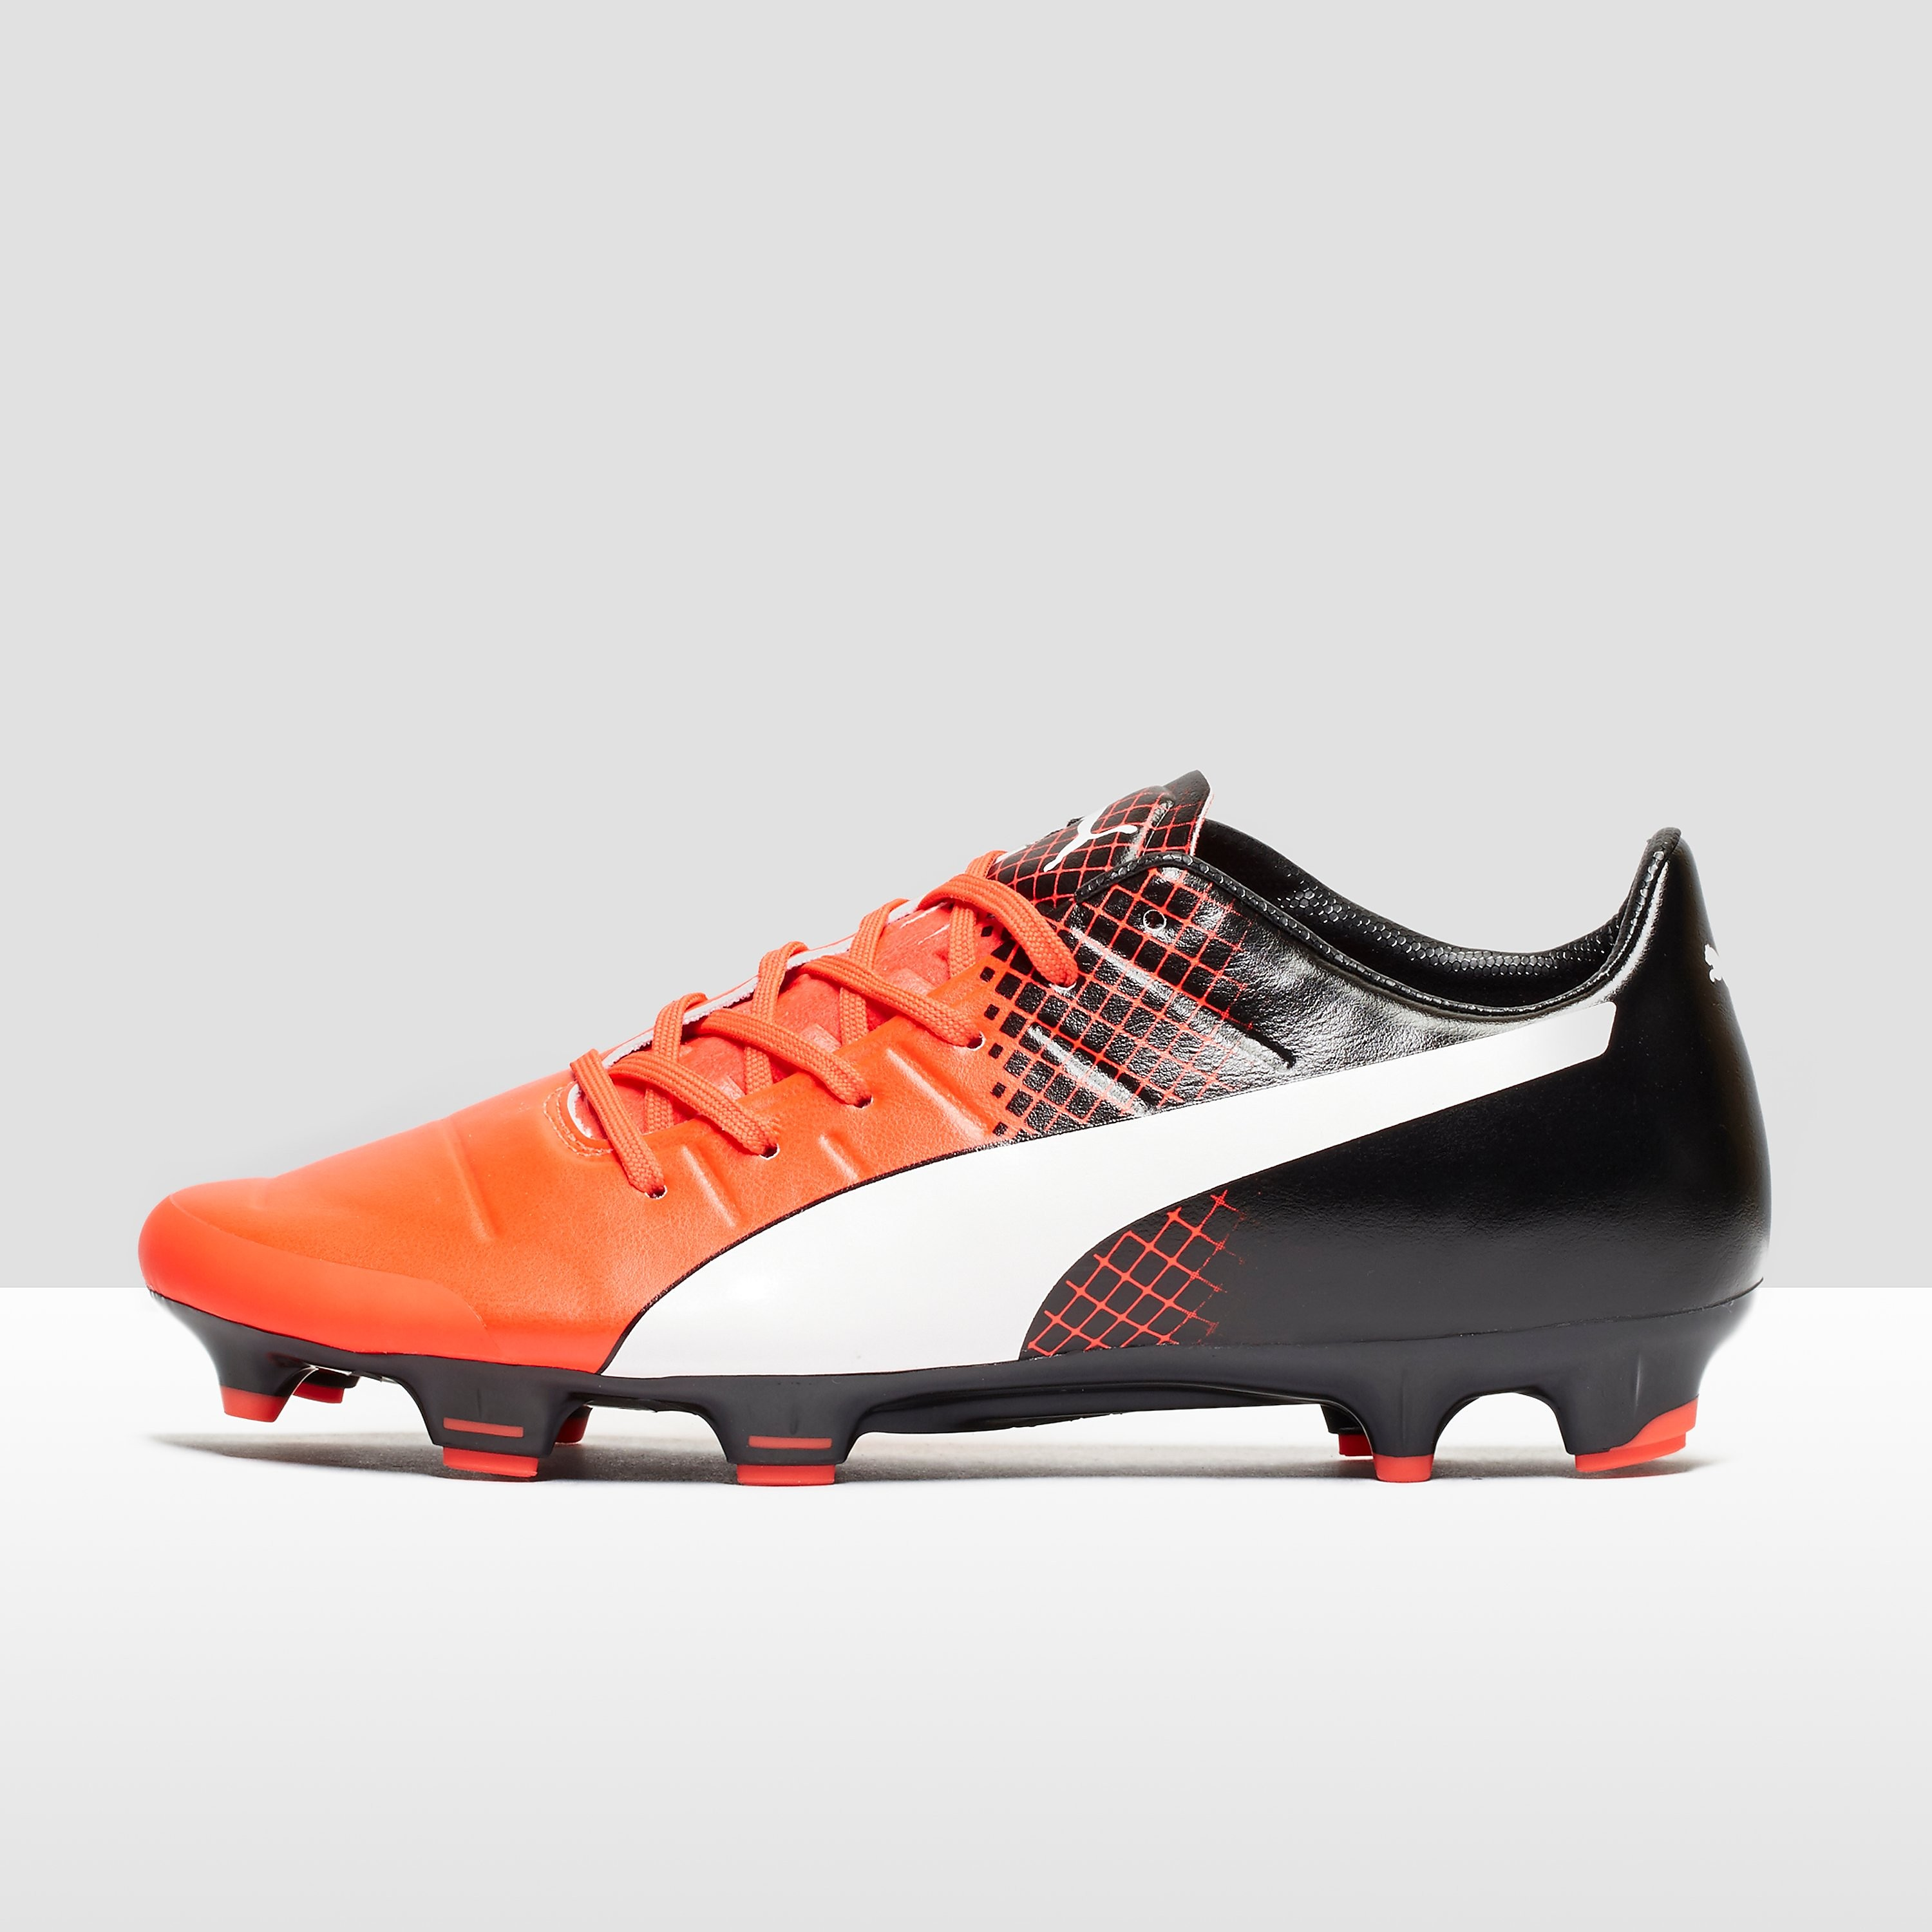 Puma EVOPOWER 2.3 Firm Ground Football Boots